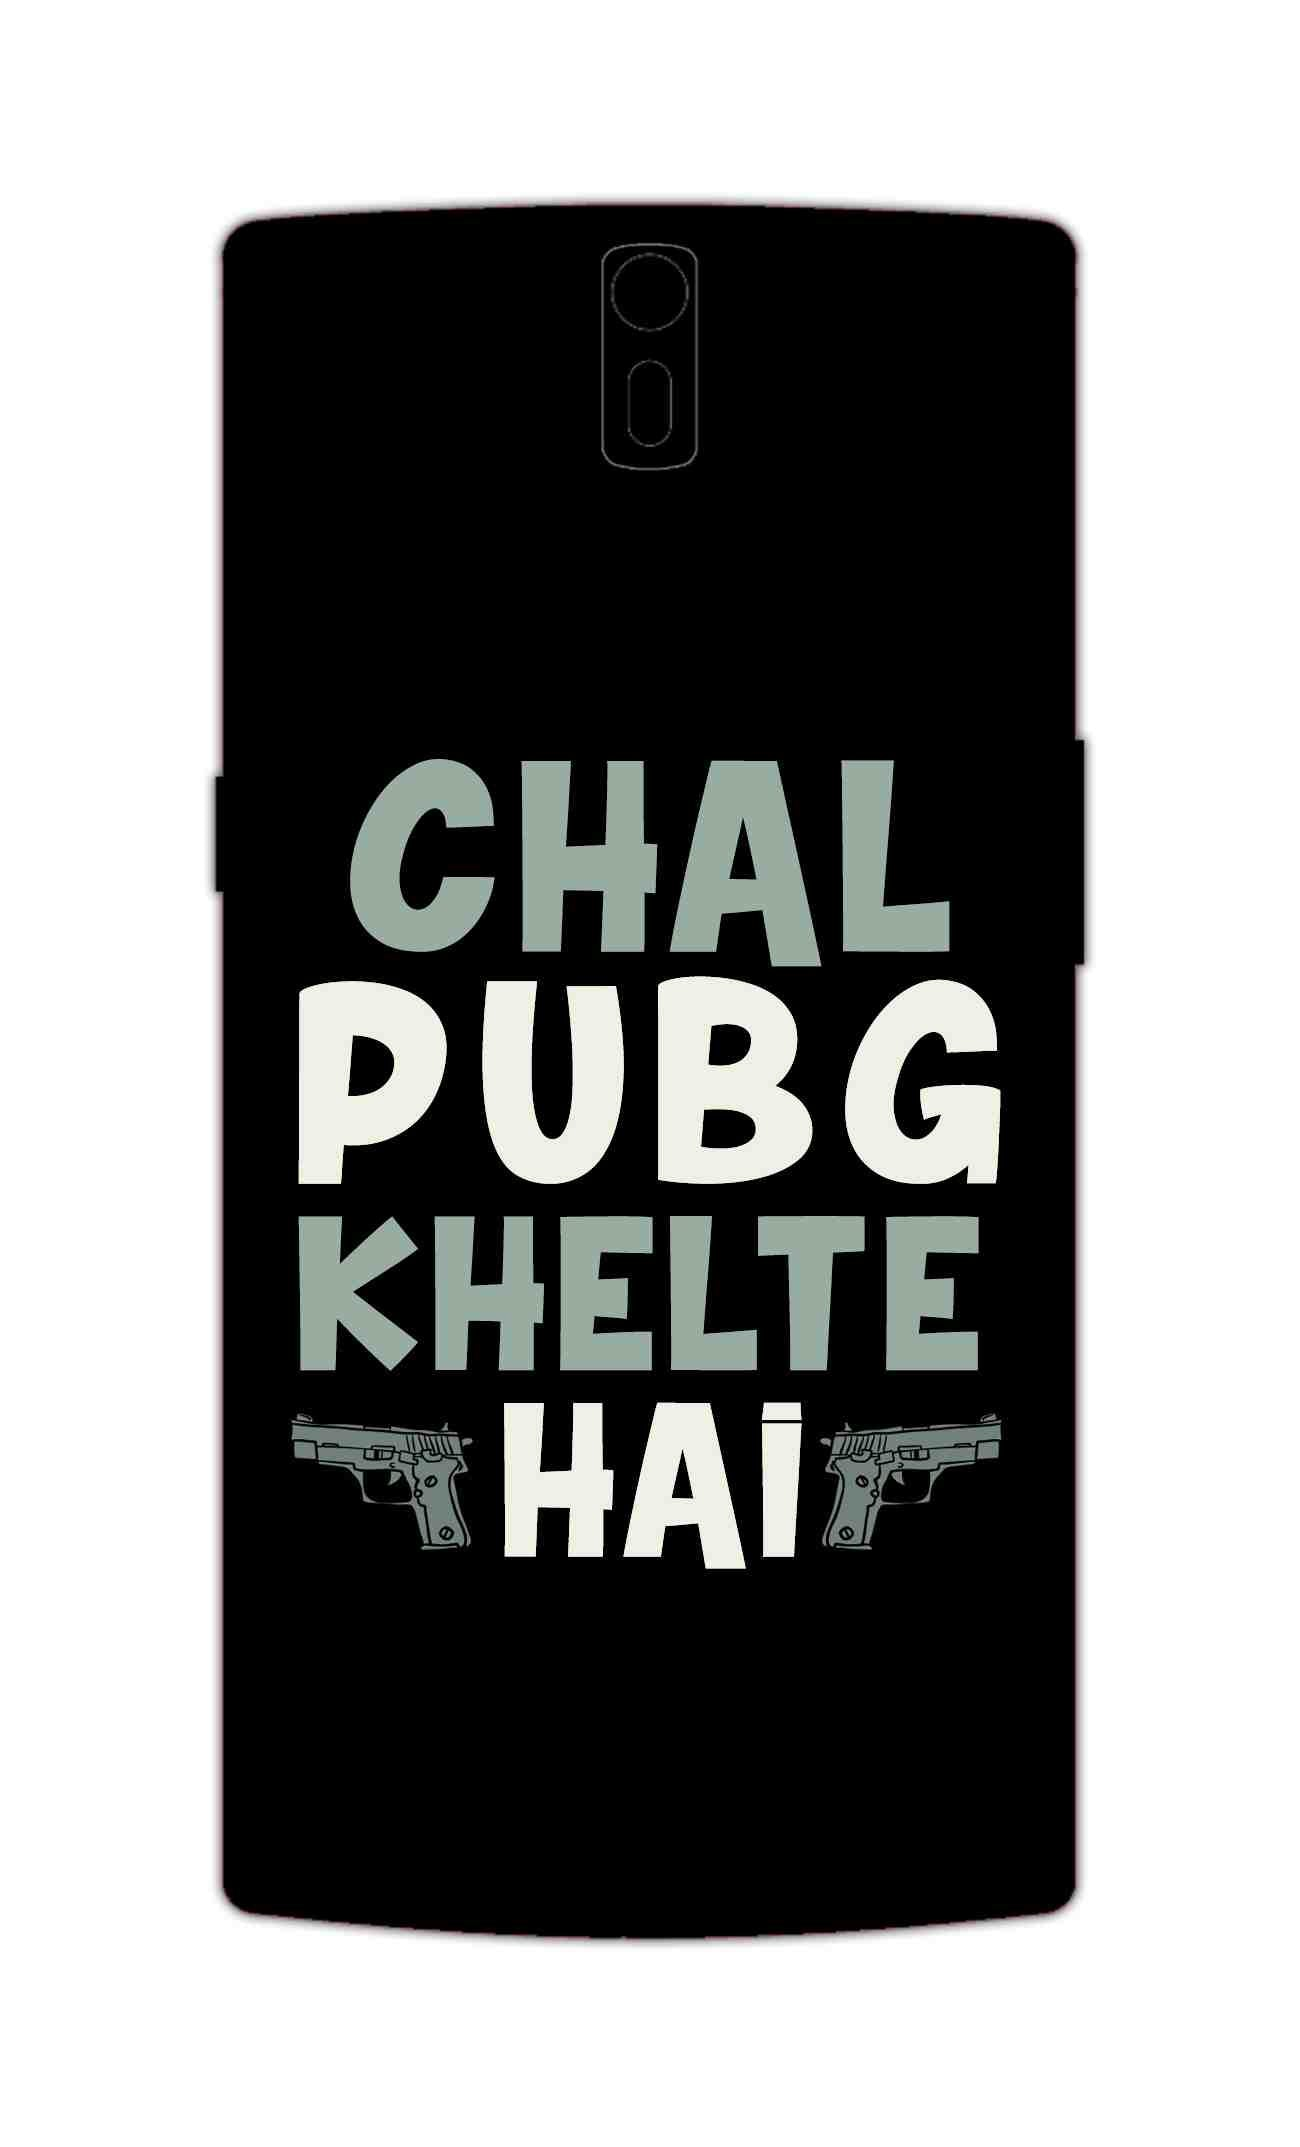 Chal PubG Khelte Hai For Game Lovers OnePlus 1 Mobile Cover Case